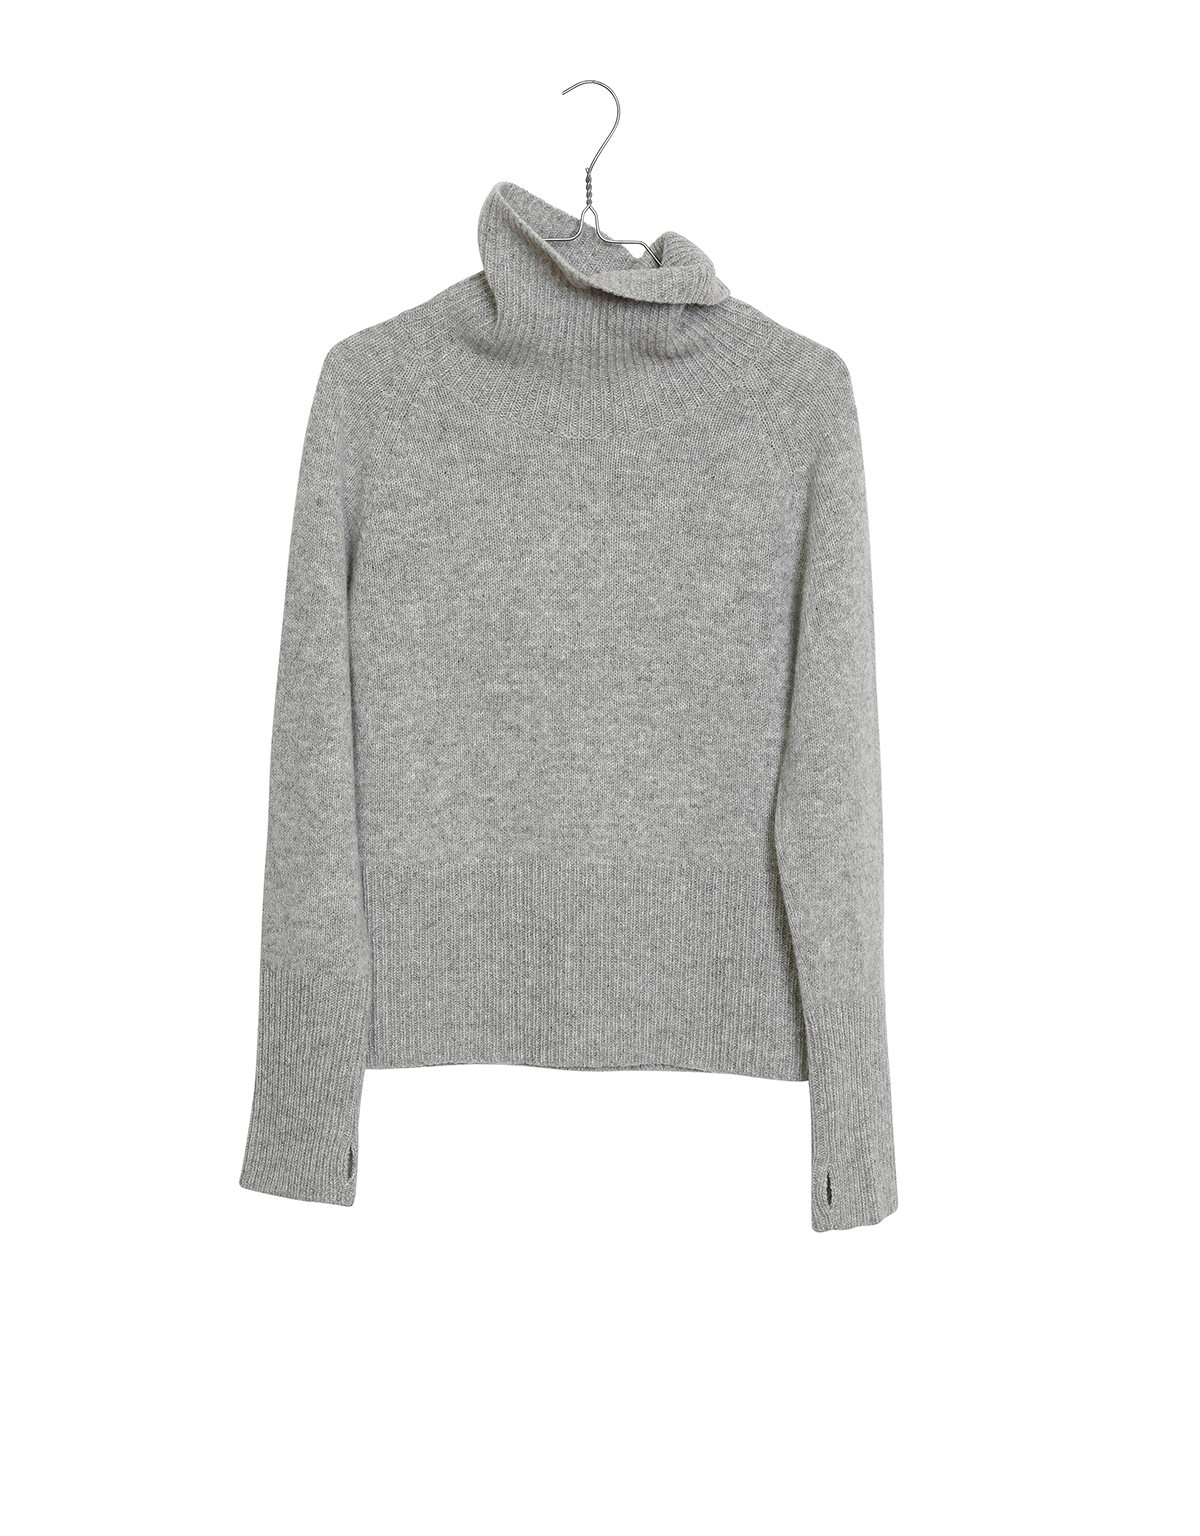 170246_nygardsanna_knitwear_POLO_LIGHTGREY_A